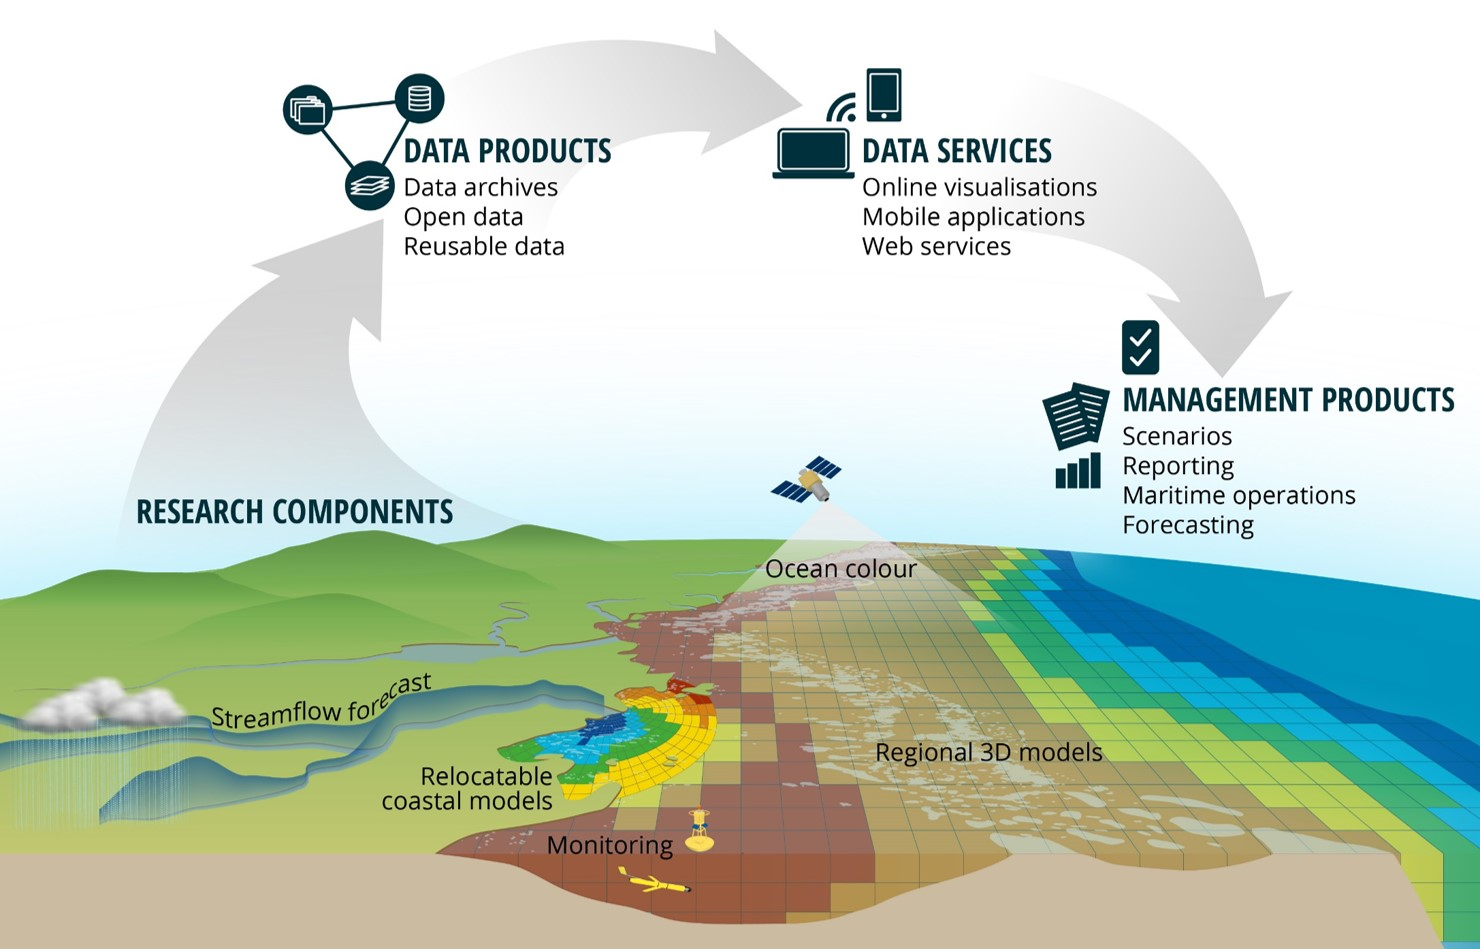 This graphic shows the range of work undertaken in the eReefs program. Research includes land based monitoring, creation of regional 3D models, satellite sensing of ocean colour, streamflow forecasting and relocatable coastal models. The flow of information is from data products, to data services, through to management products such as reports and forecasting products.